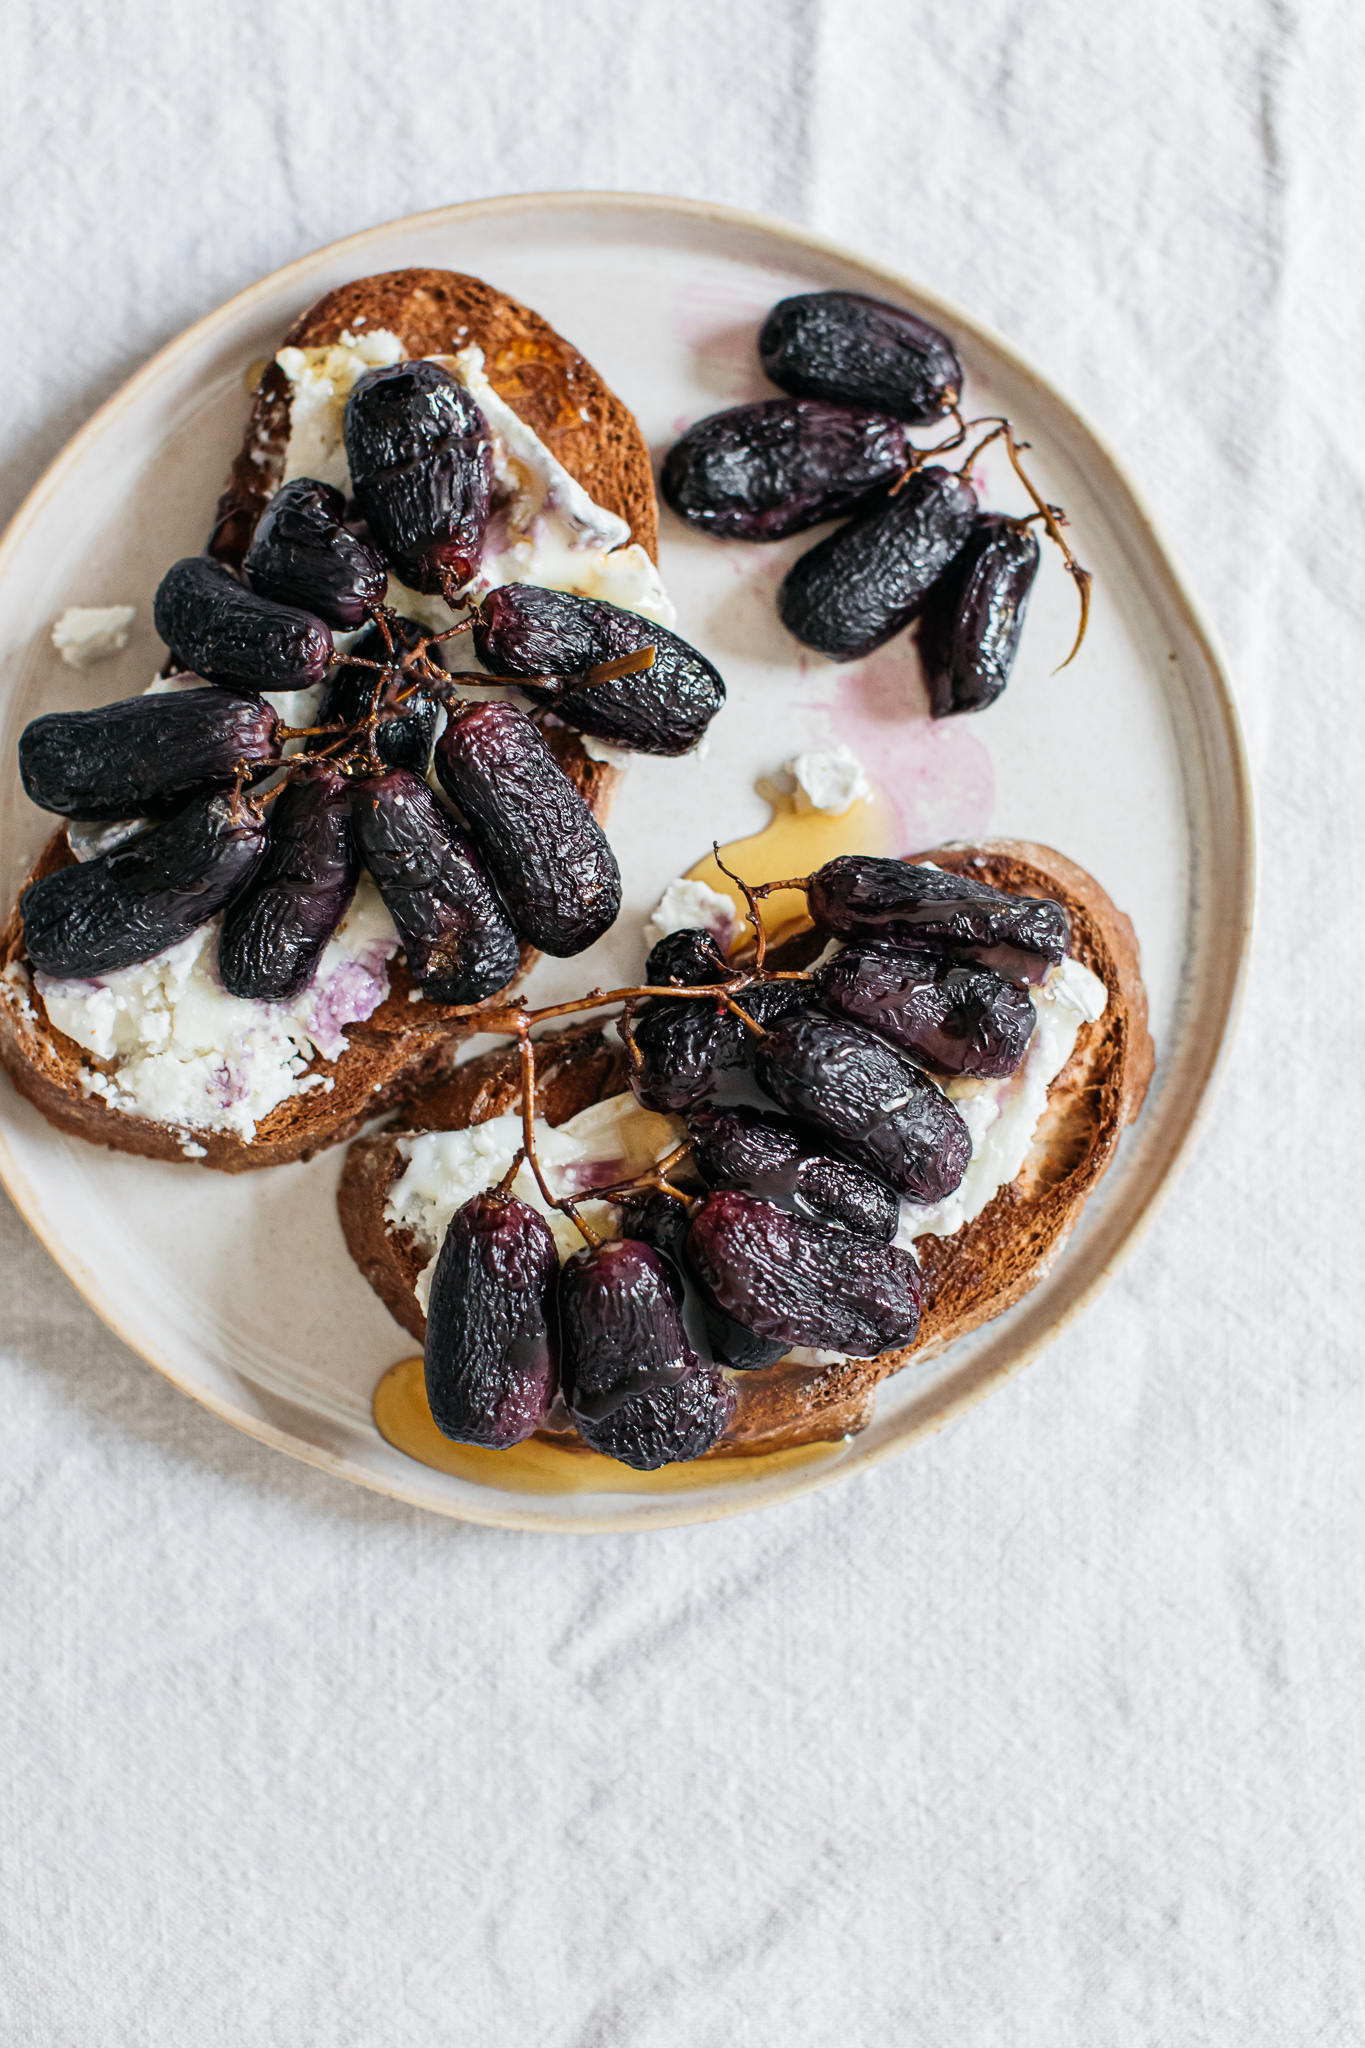 Low FODMAP roasted grapes on goats cheese toast